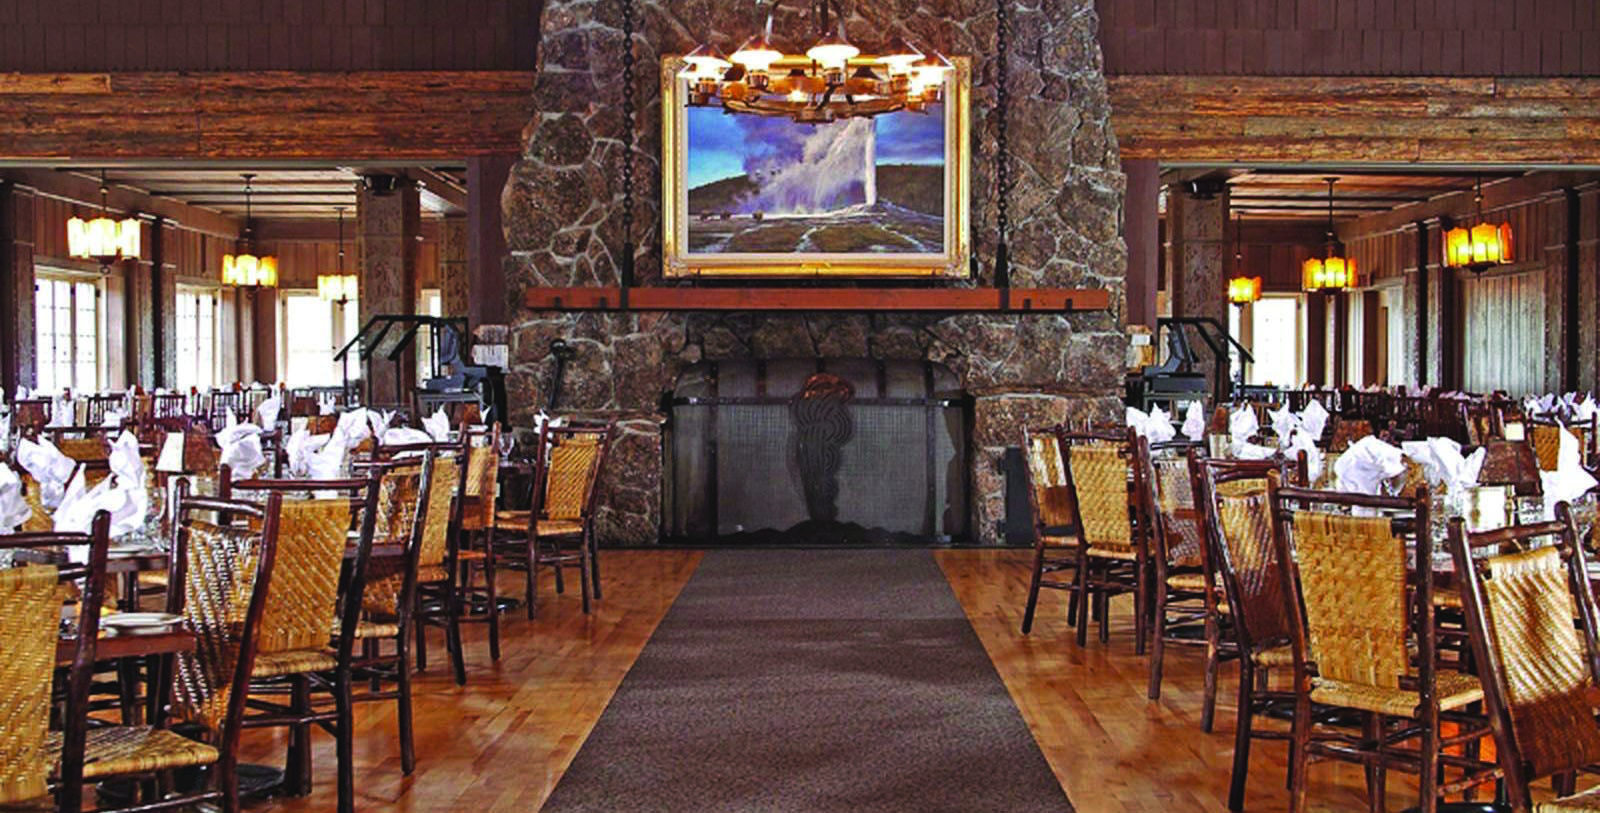 Image of Dining Room at Old Faithful Inn, Yellowstone National Park, Wyoming, 1923, Member of Historic Hotels of America, Experience